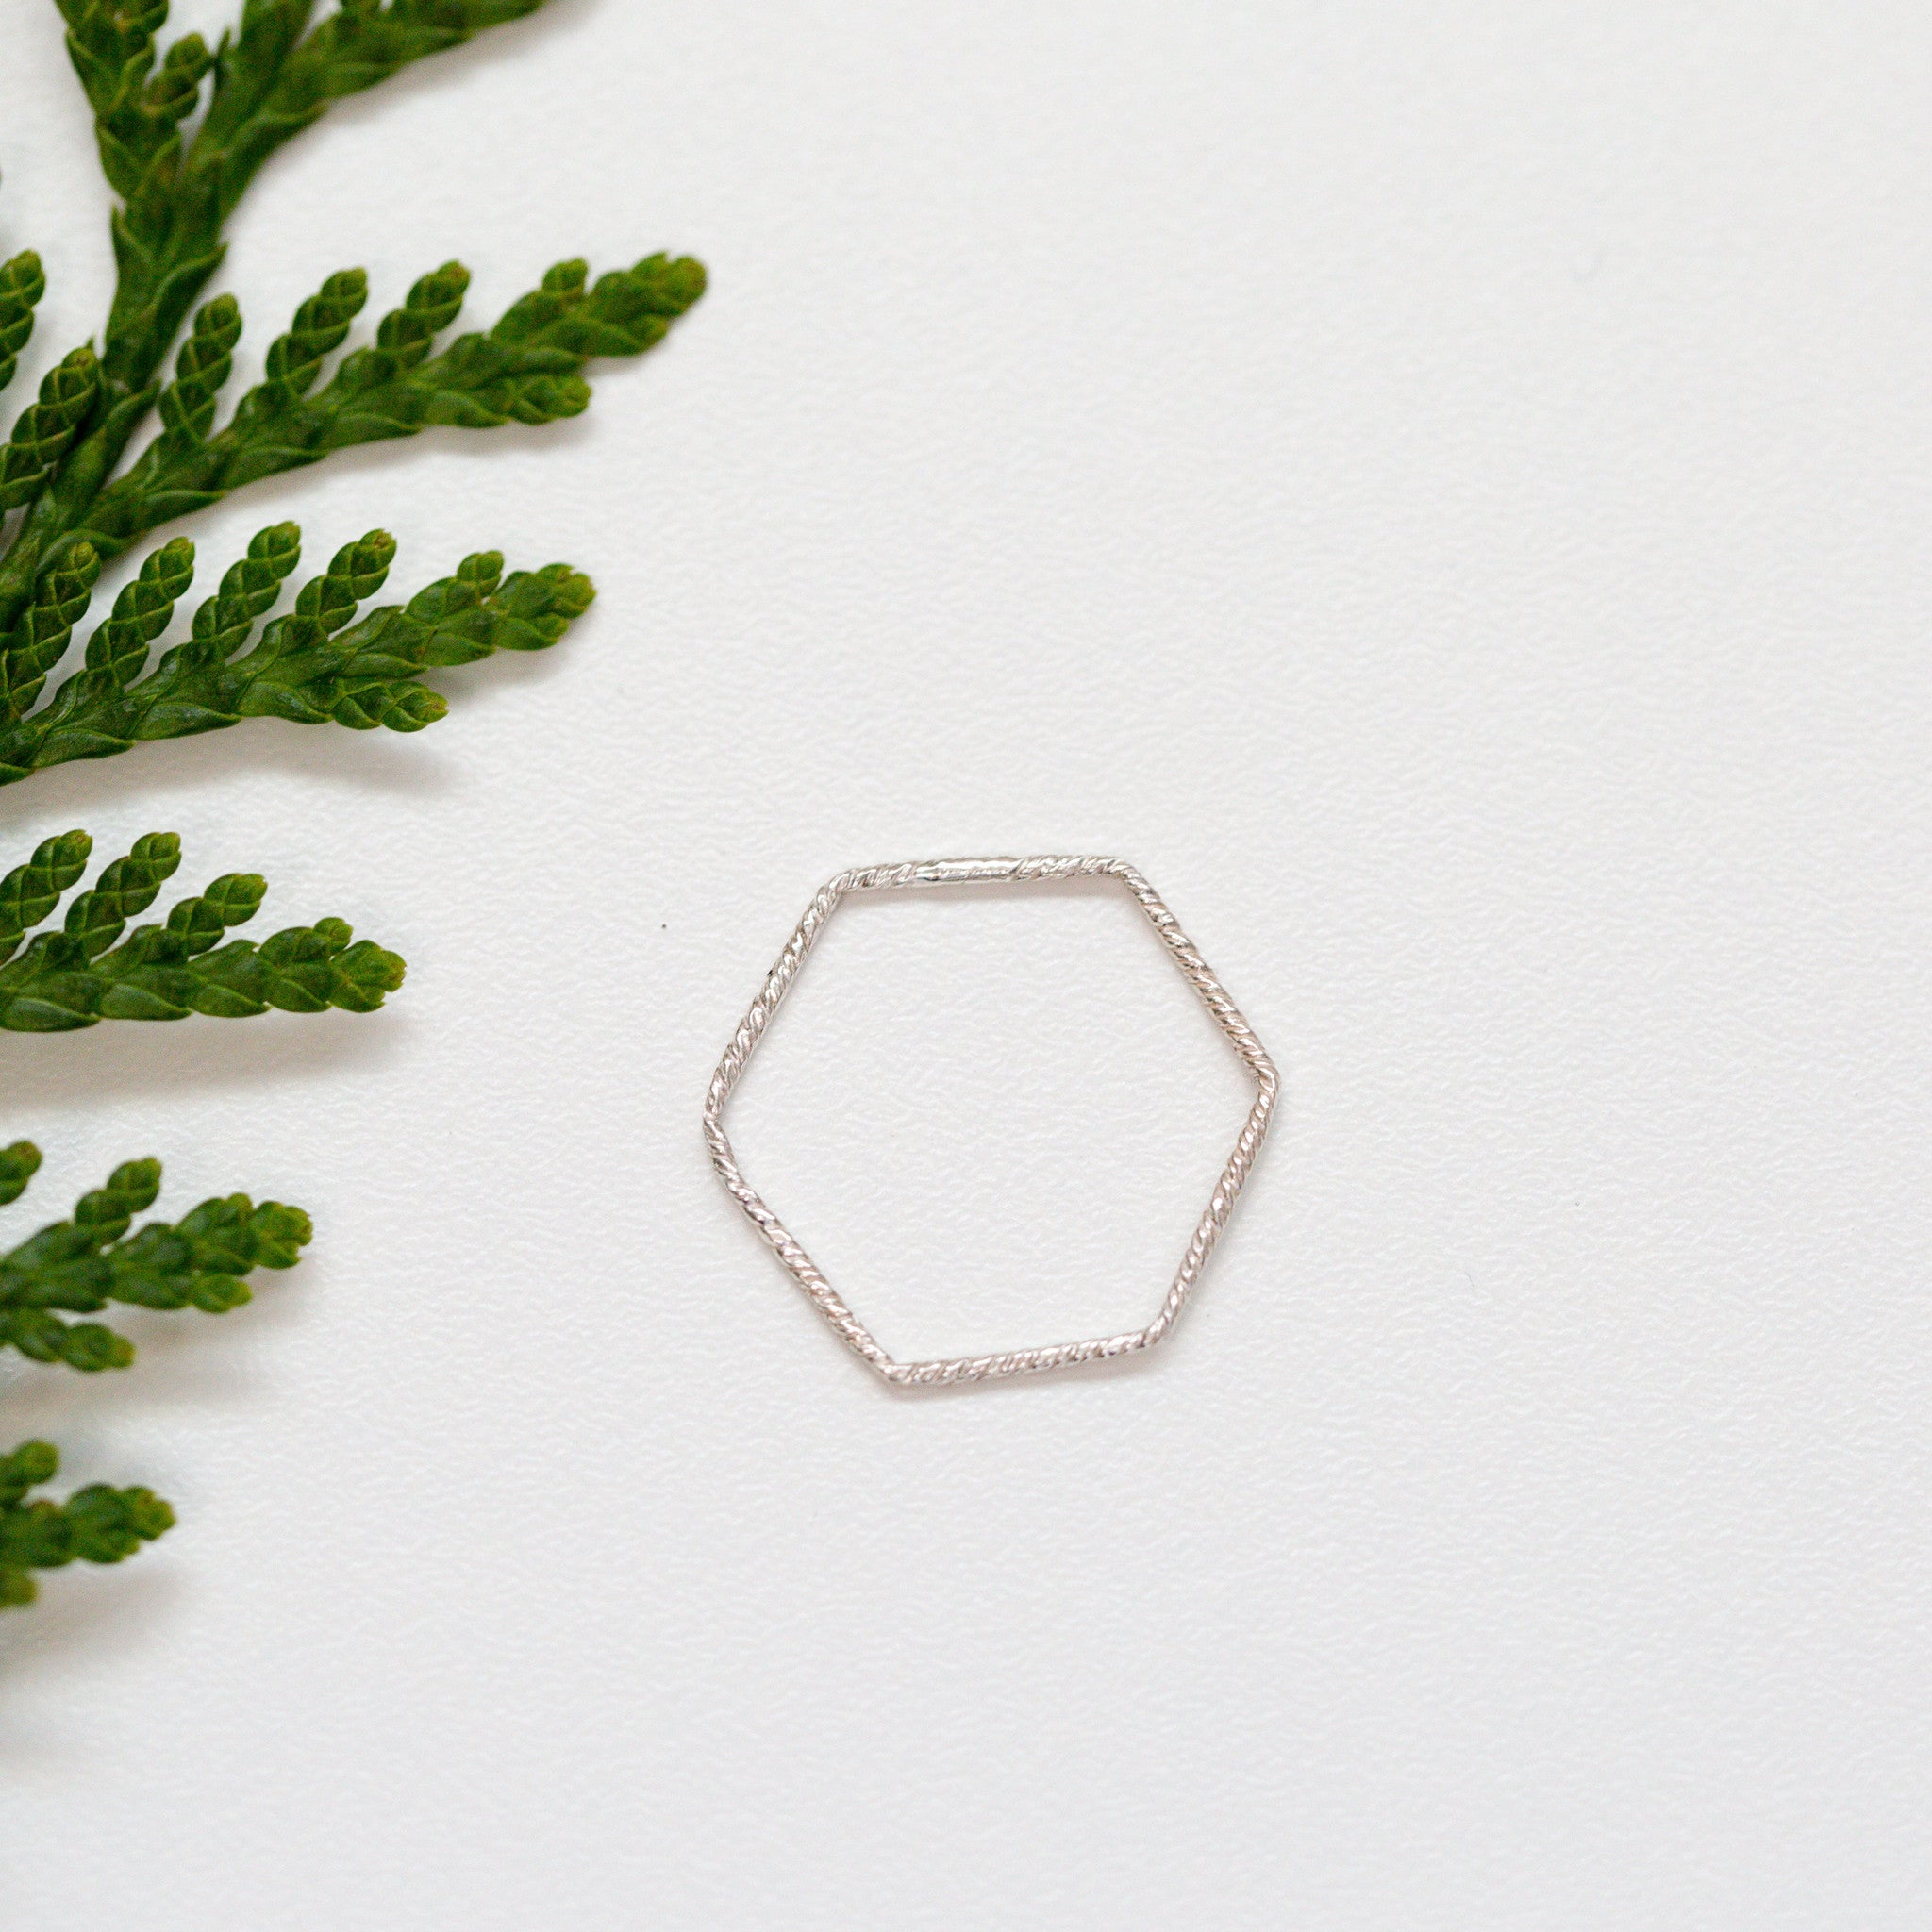 Hexagonal Twist Ring